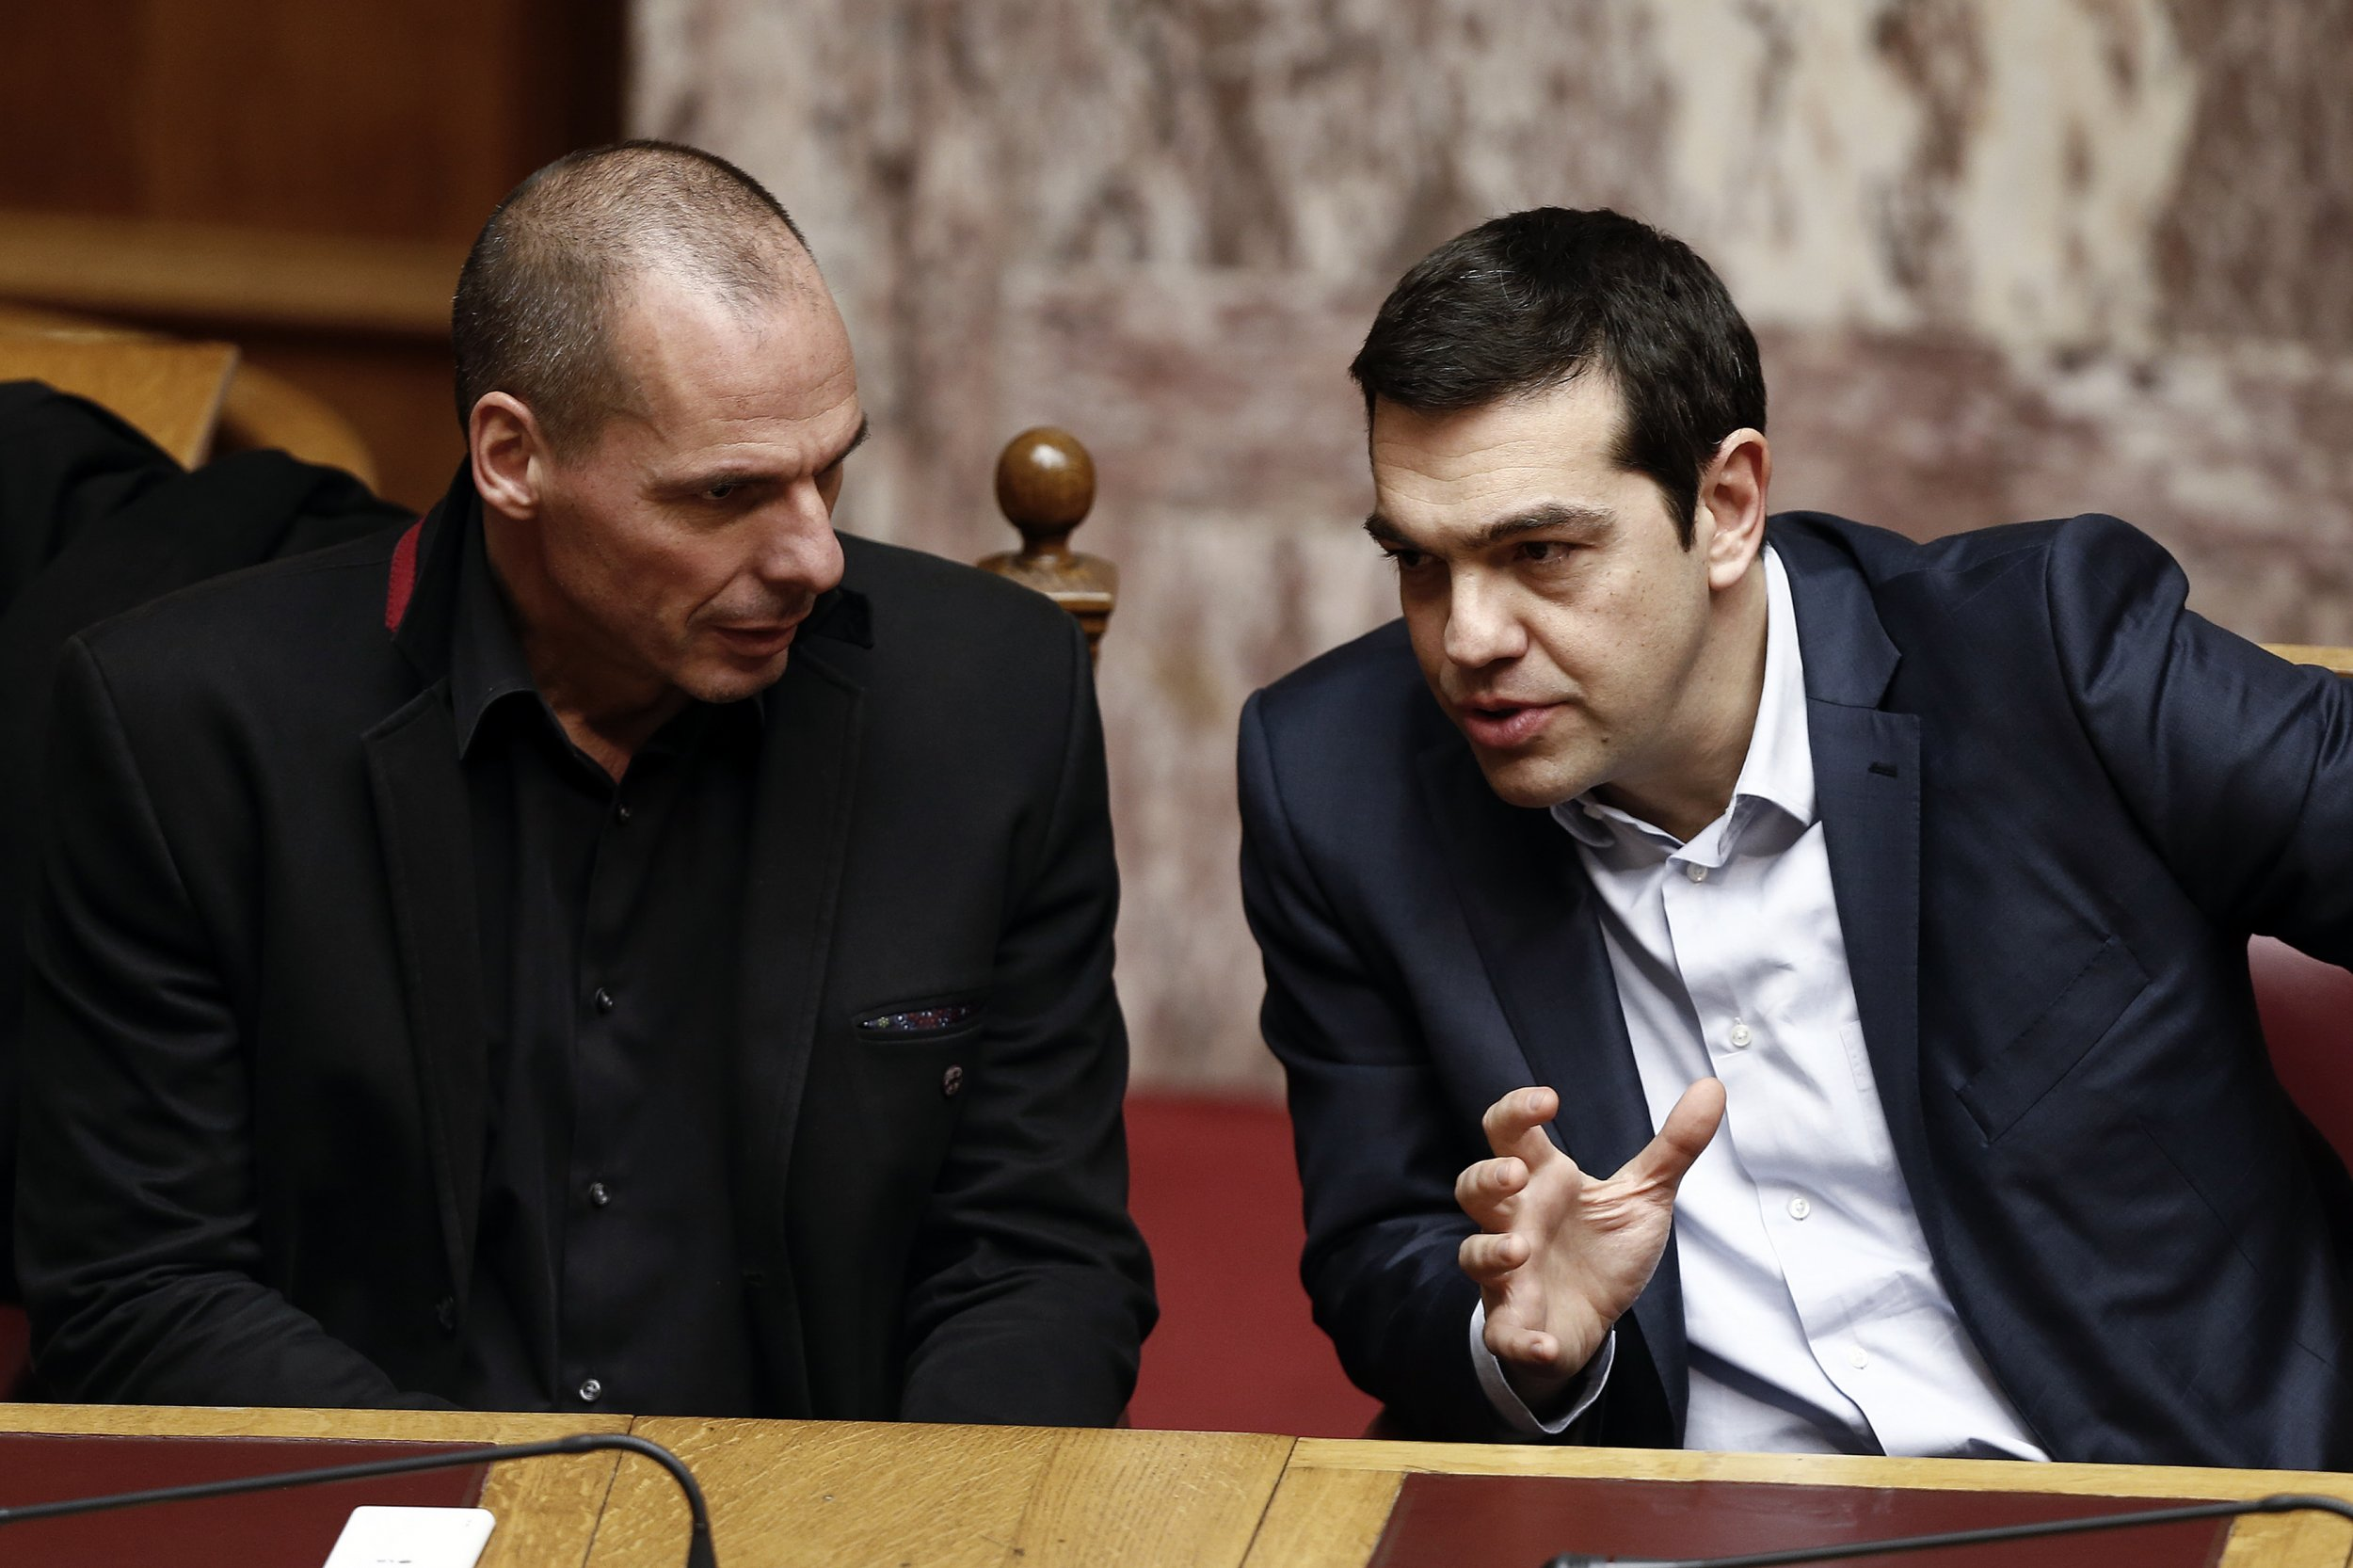 Tsipras and Varoufakis